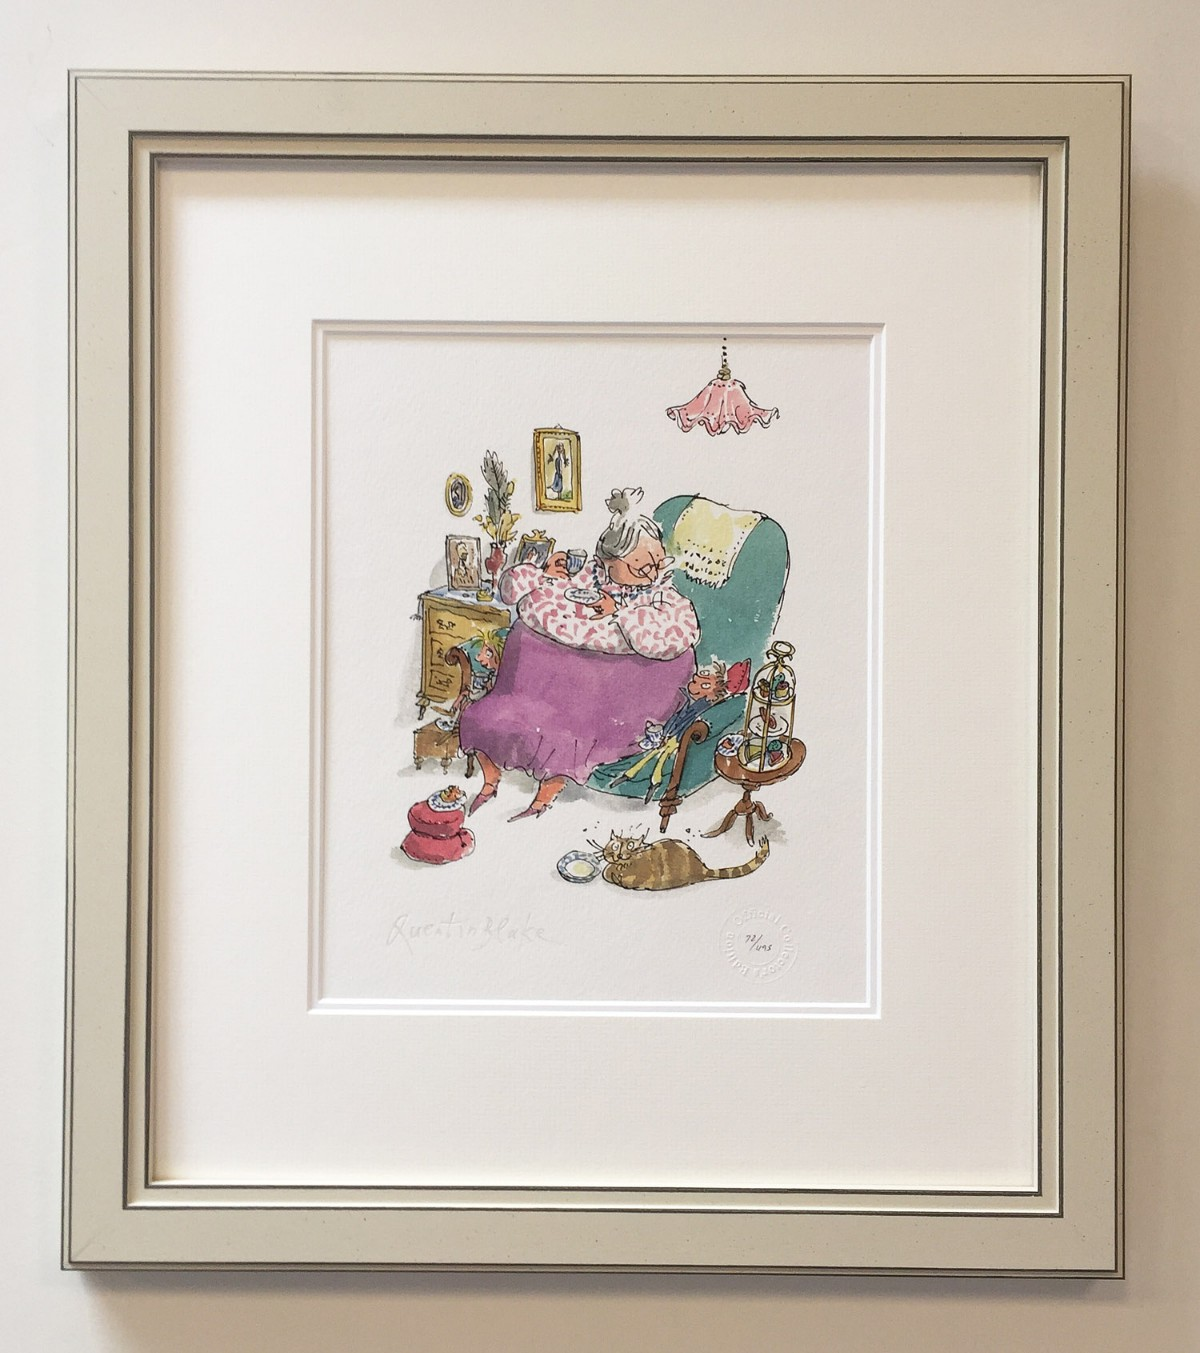 G is for Grandma by Quentin Blake